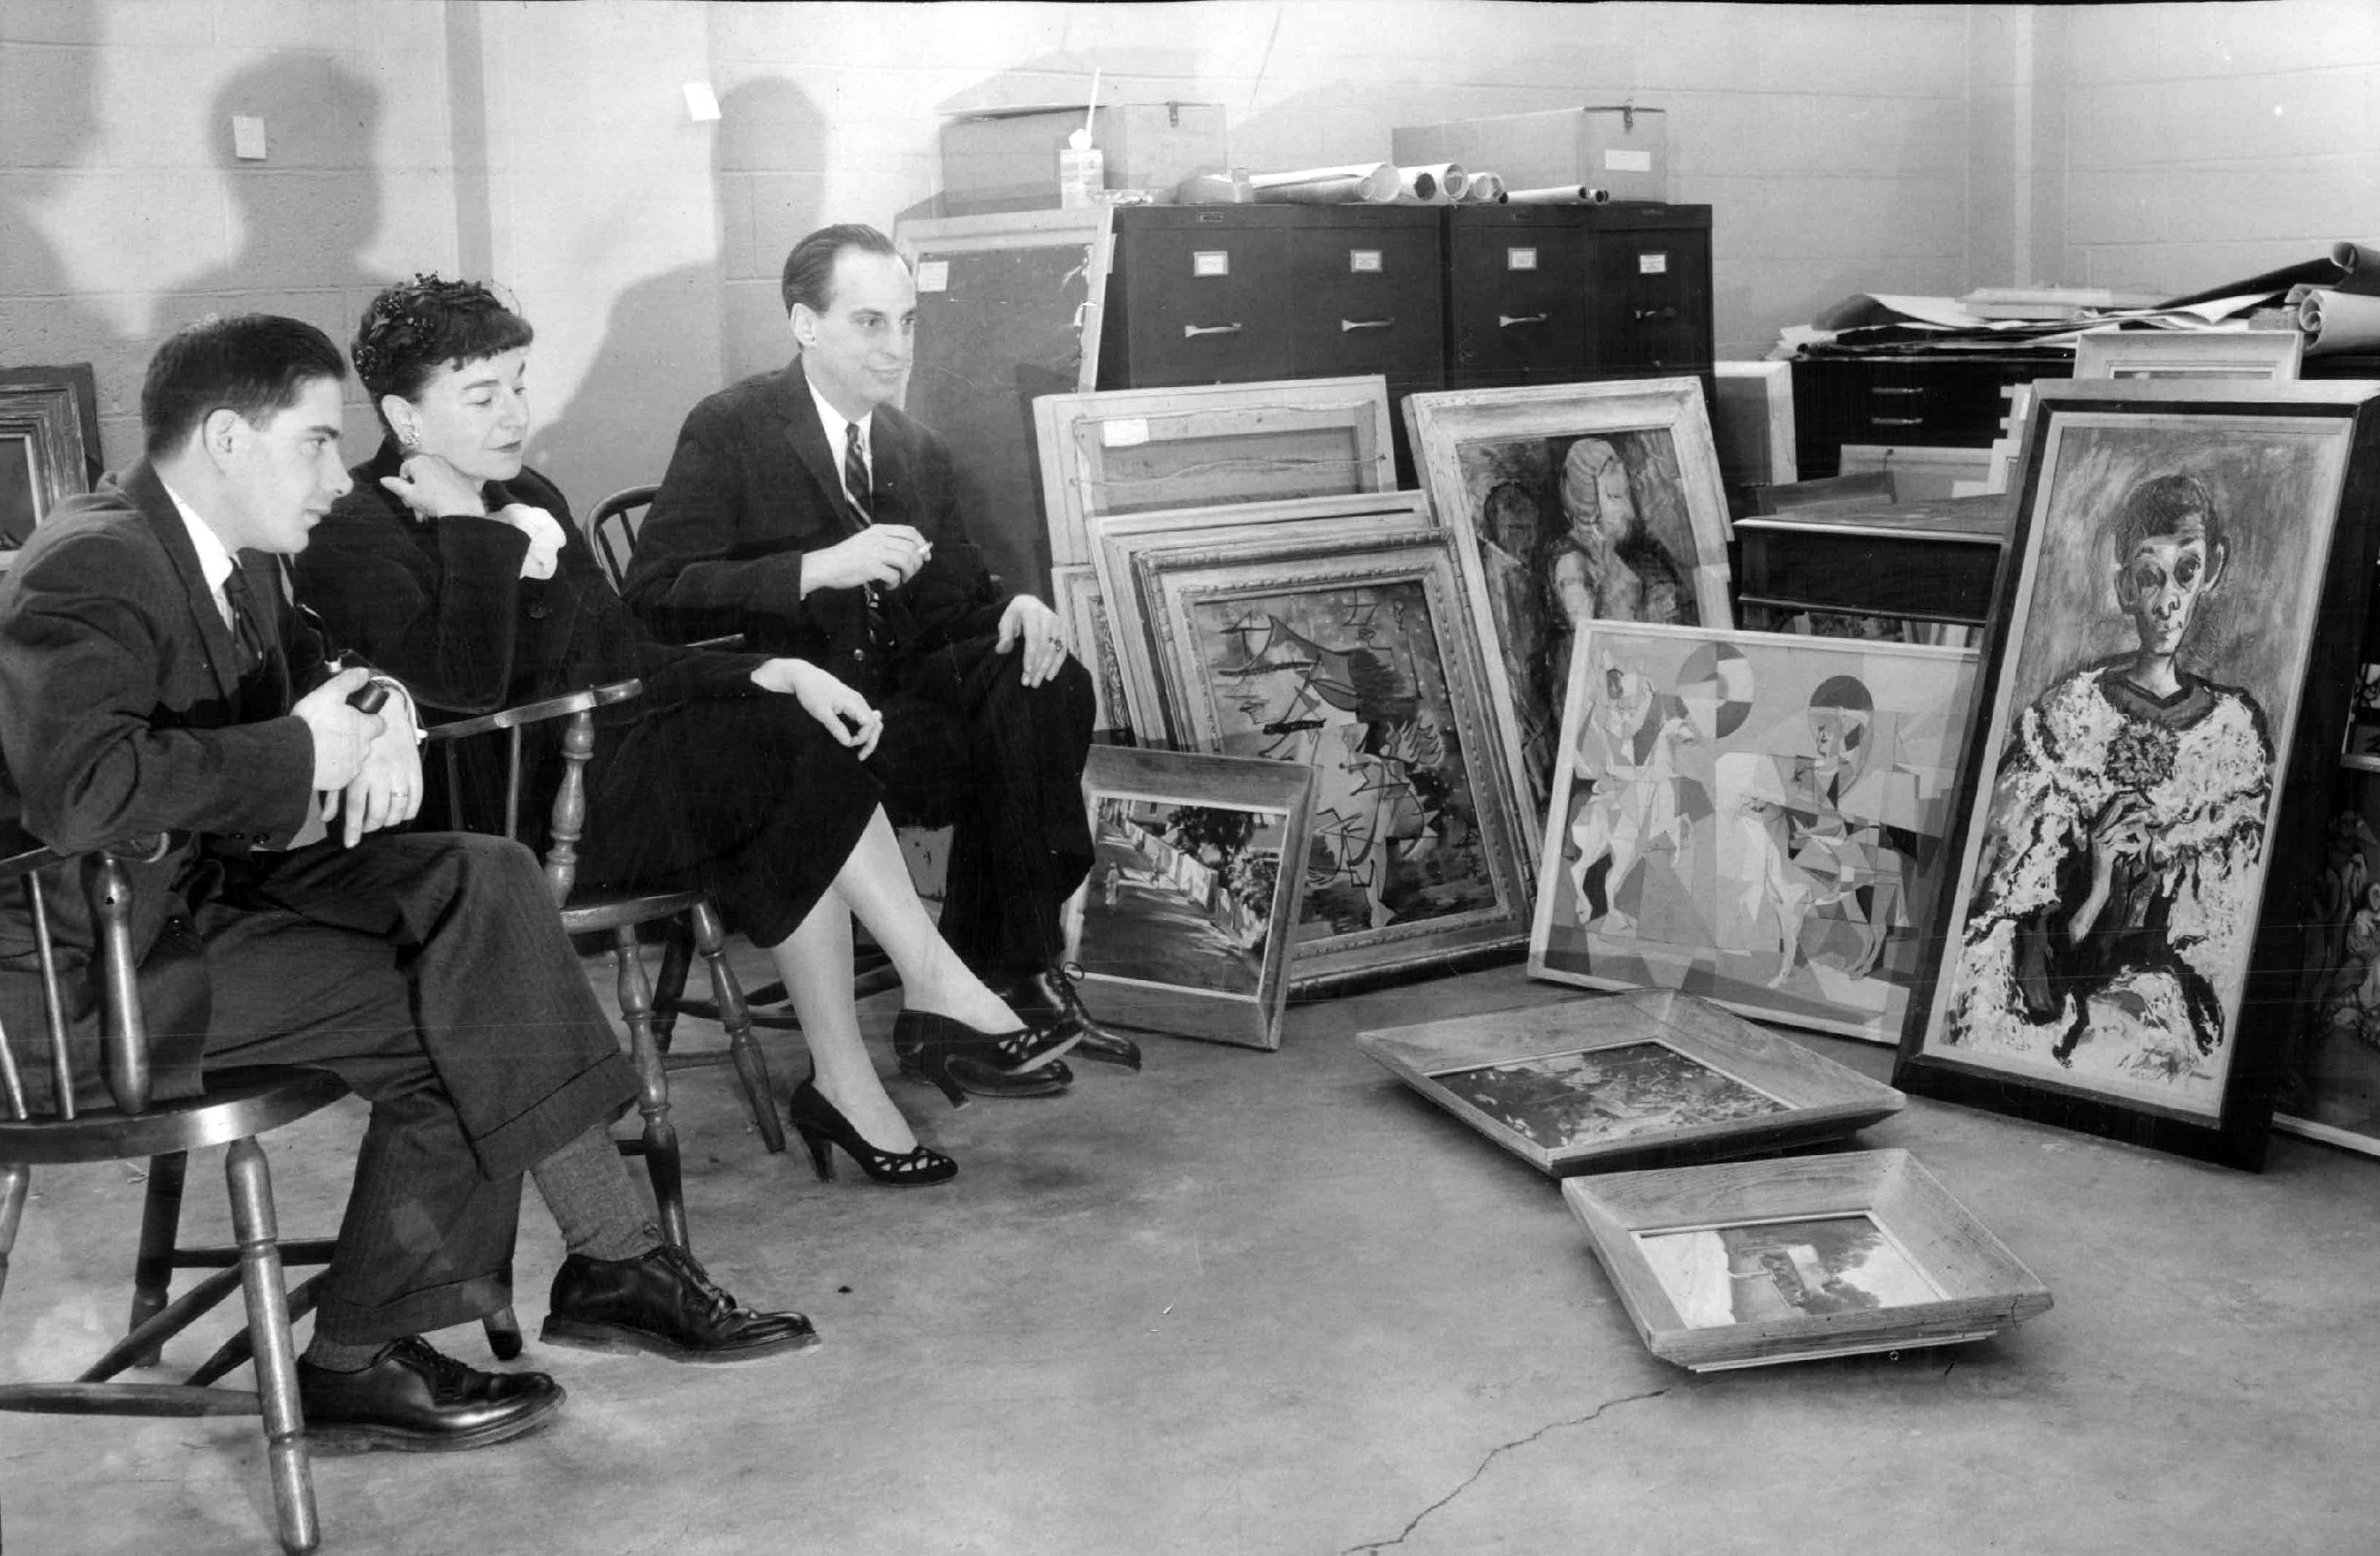 A jury of art experts deliberates on which paintings to show at a Spring exhibition for the Art Institute's Art Rental and Sales Gallery in 1959. (Courtesy Chicago Sun Times)